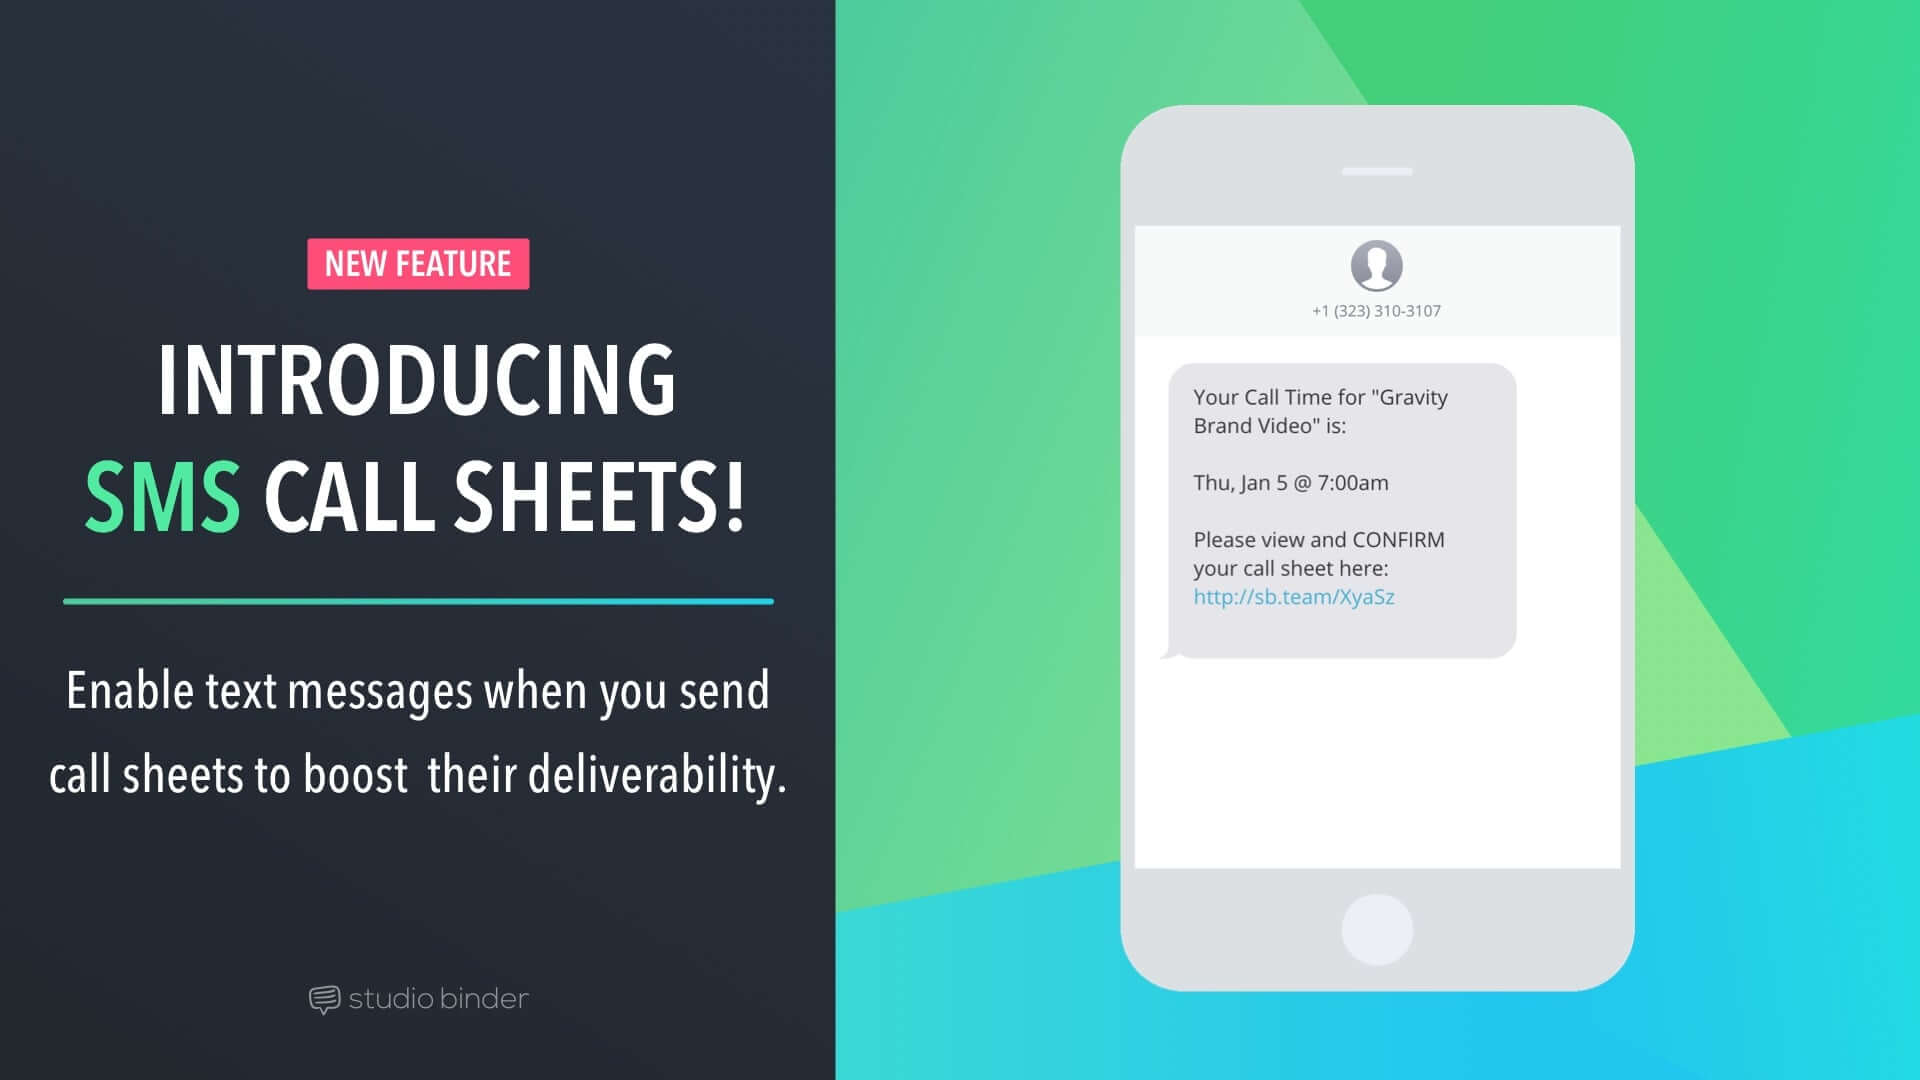 Introducing SMS Call Sheets - The Convenient Way to Send Call Sheets - Featured - StudioBinder